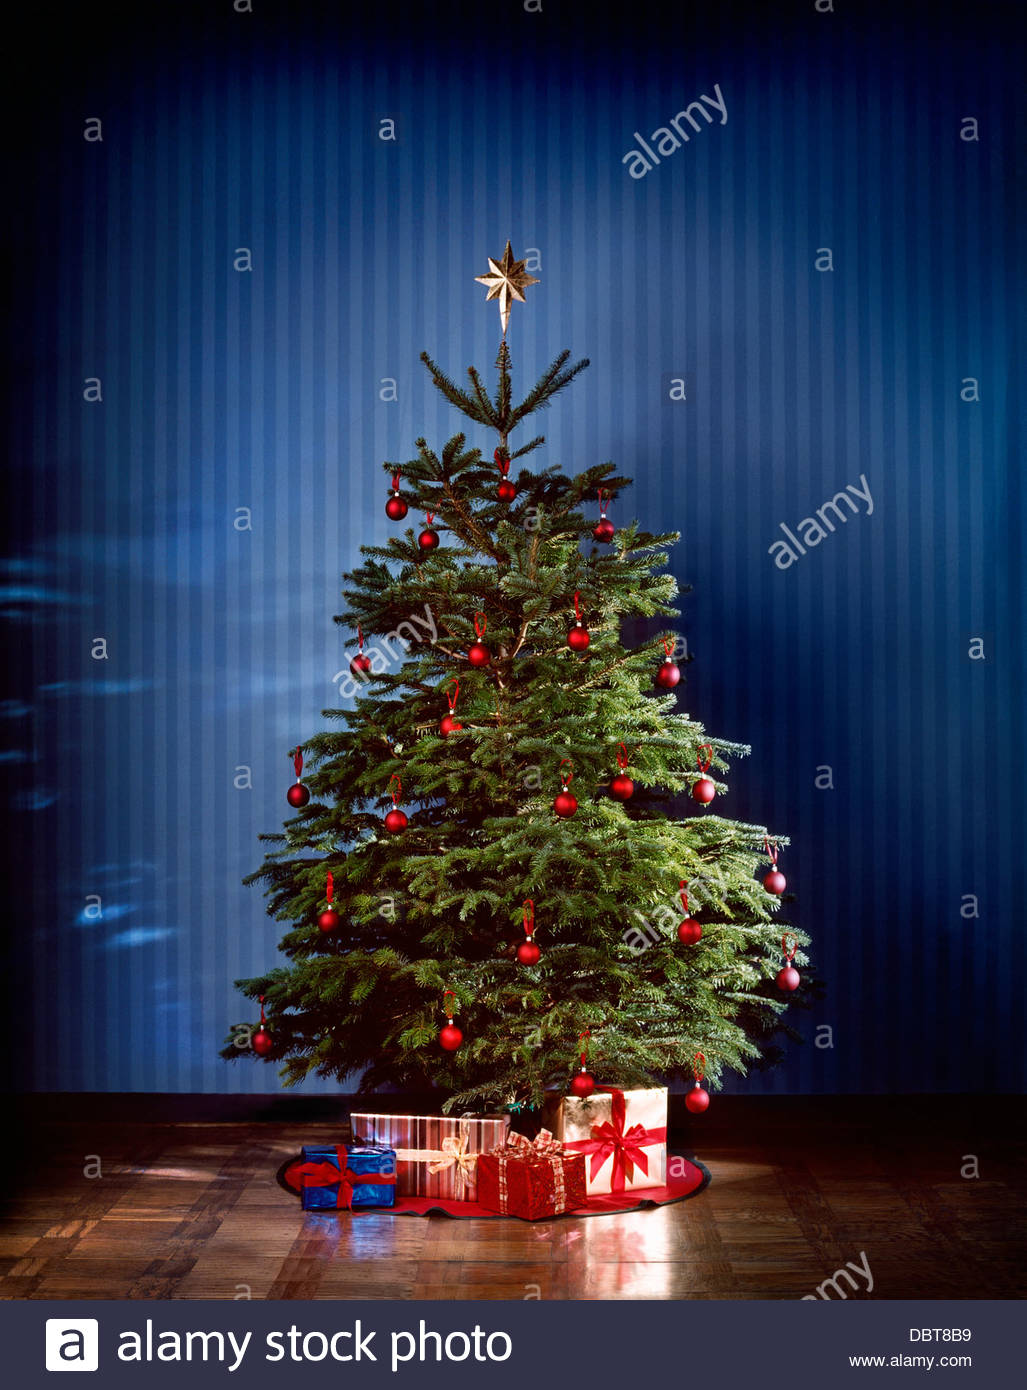 Christmas tree with presents - Stock Image